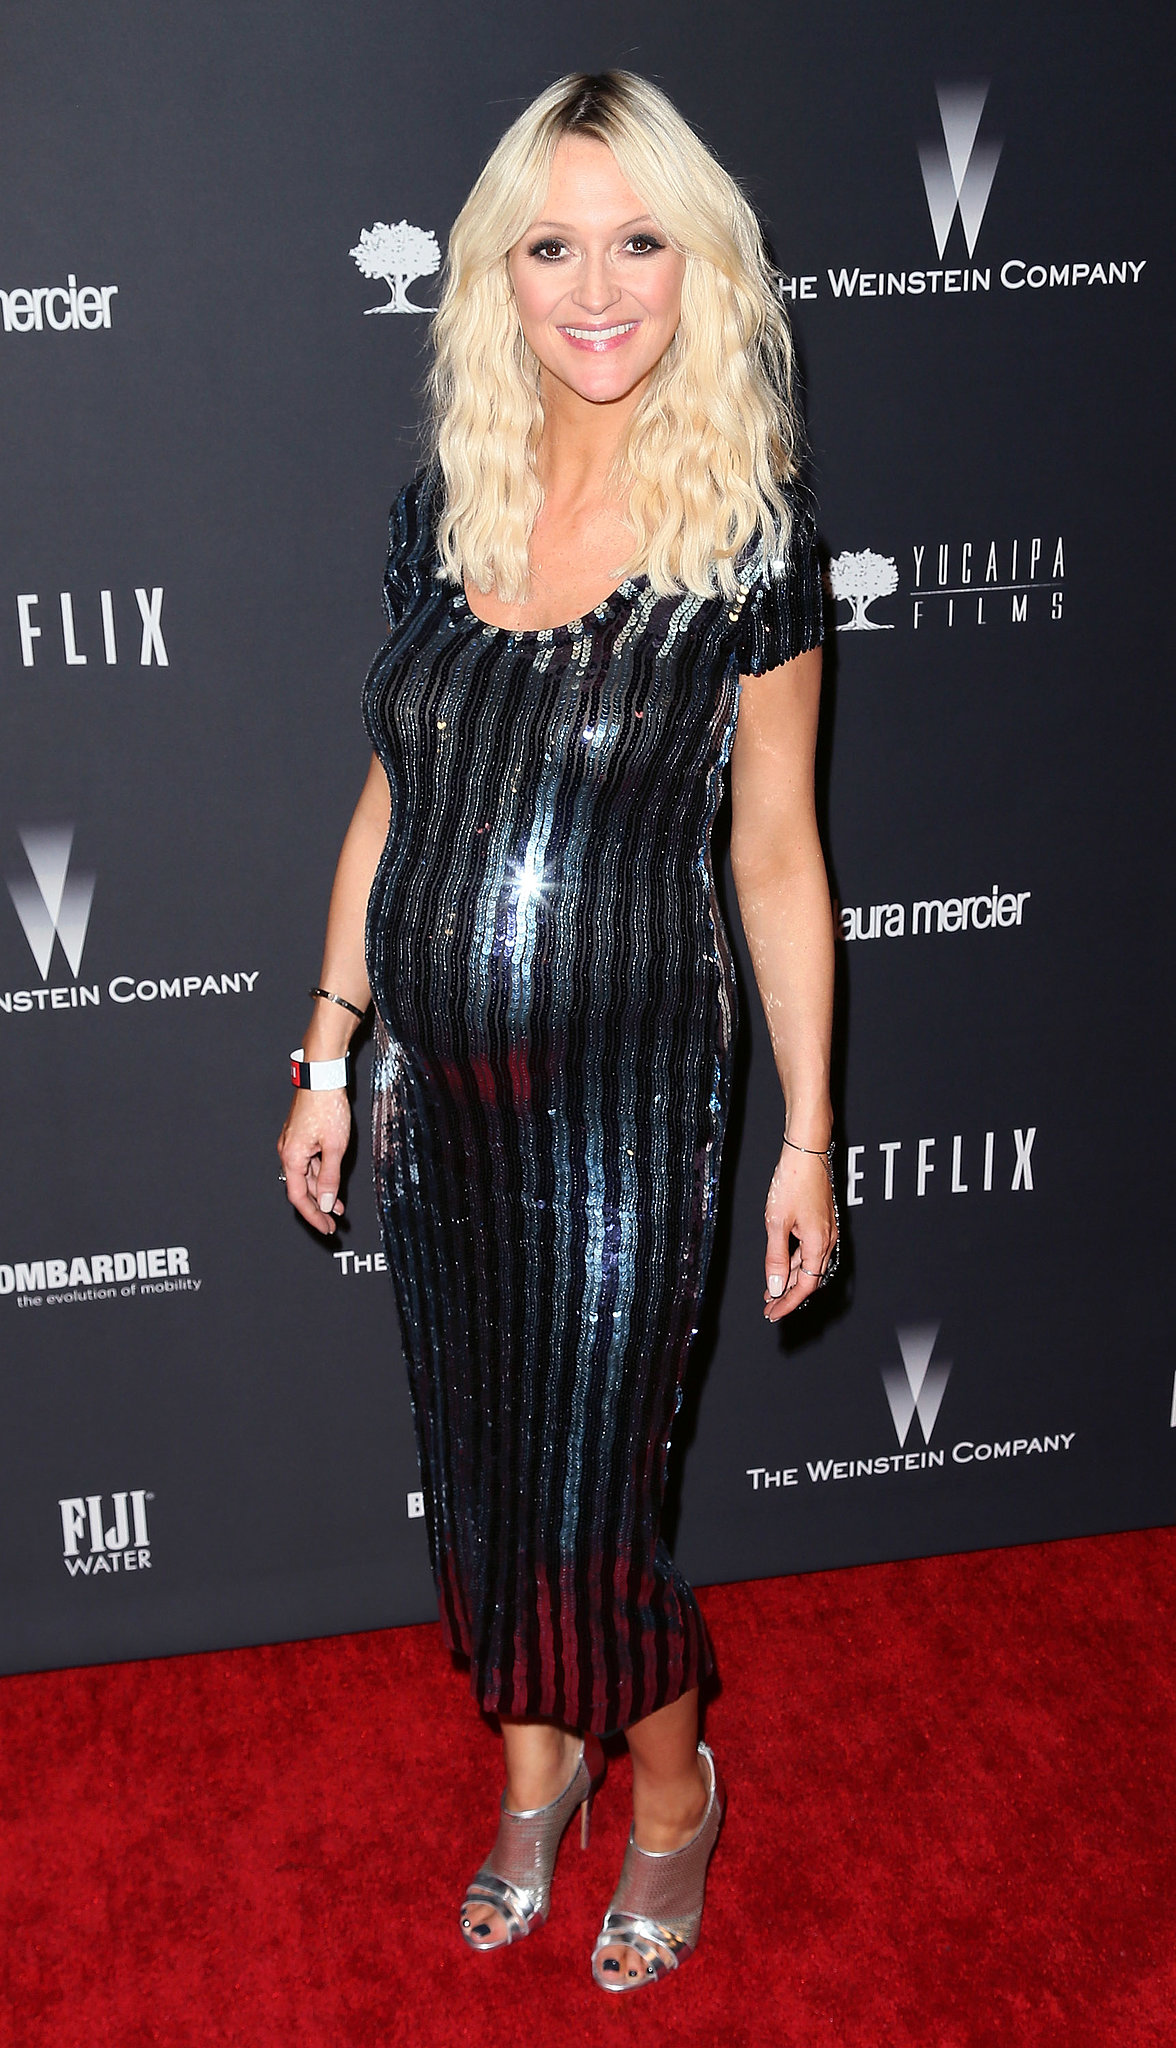 Zanna Roberts Rassi at The Weinstein Company's Golden Globe Awards afterparty.